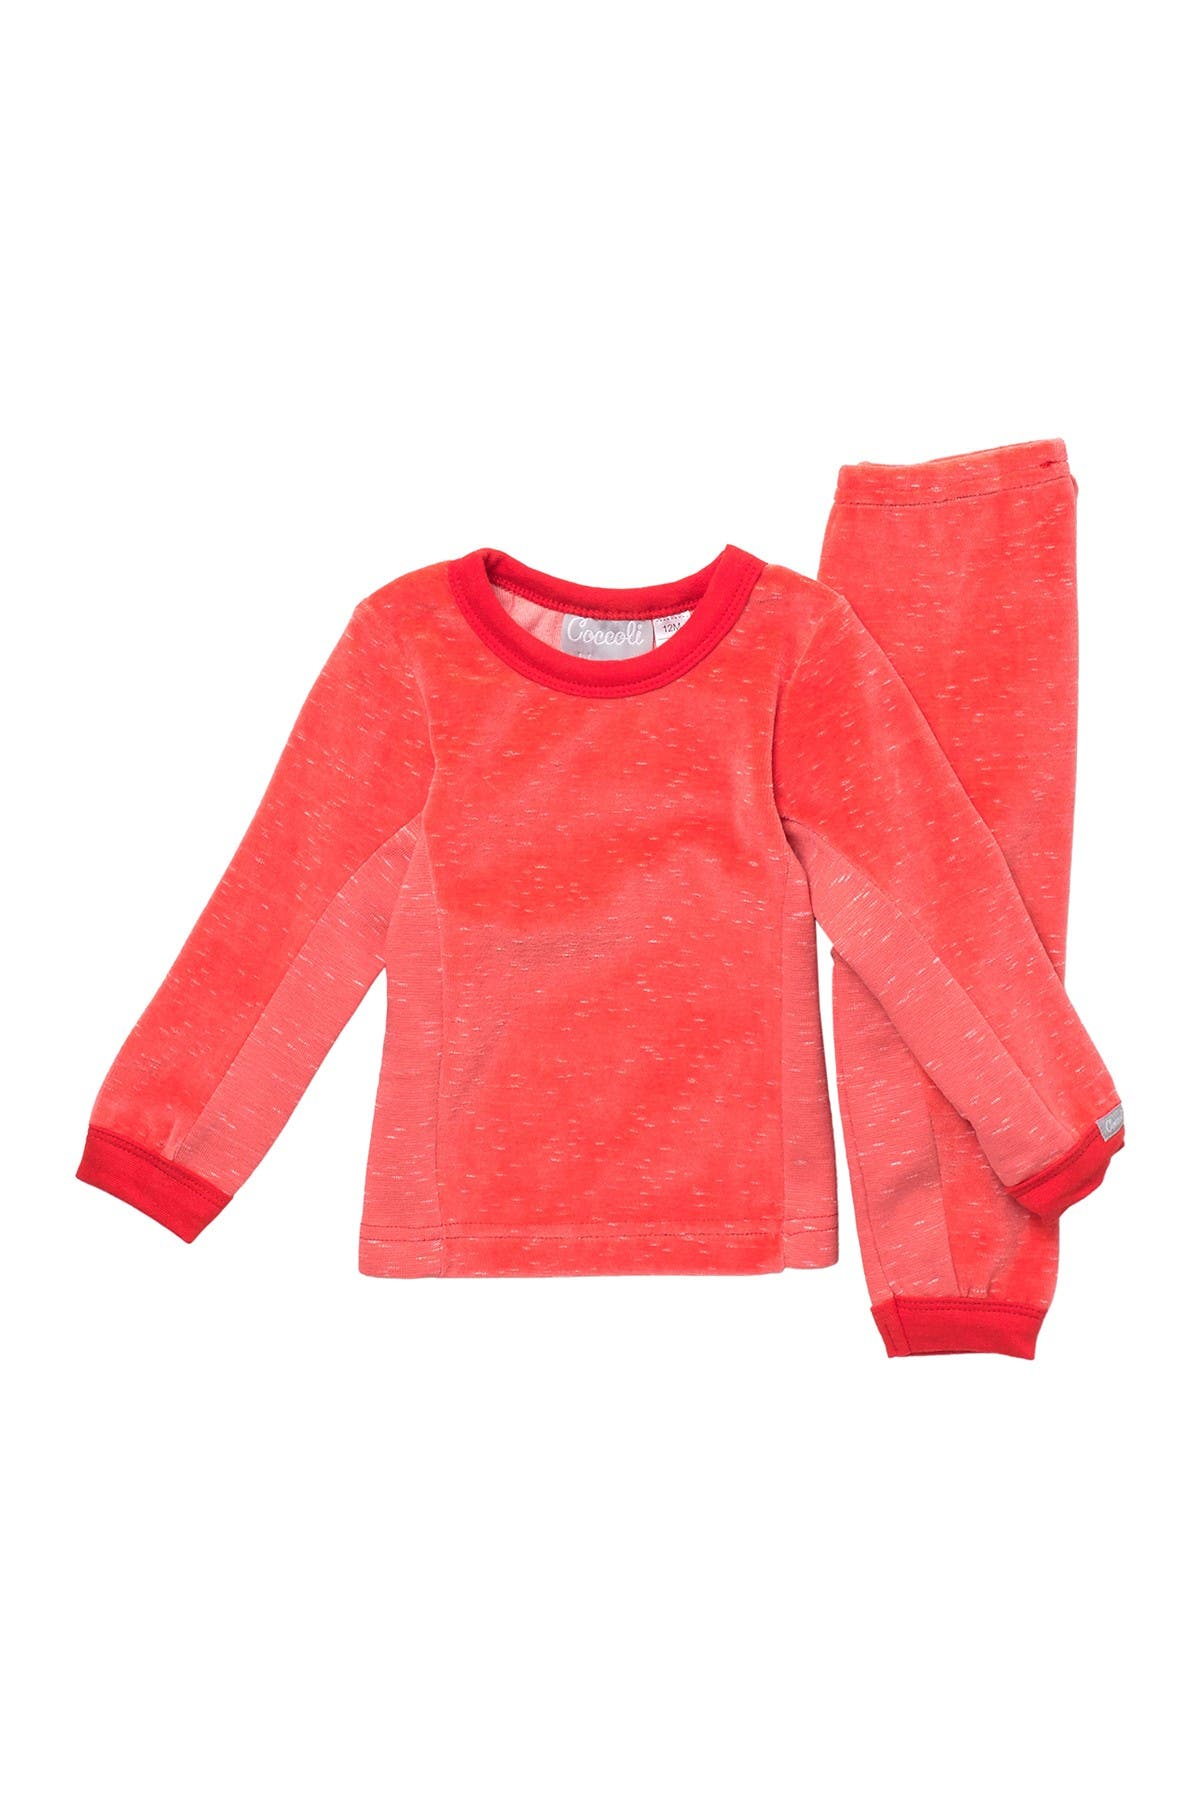 Image of Coccoli Cozy Velour Long Sleeve Top & Pants Pajama Set